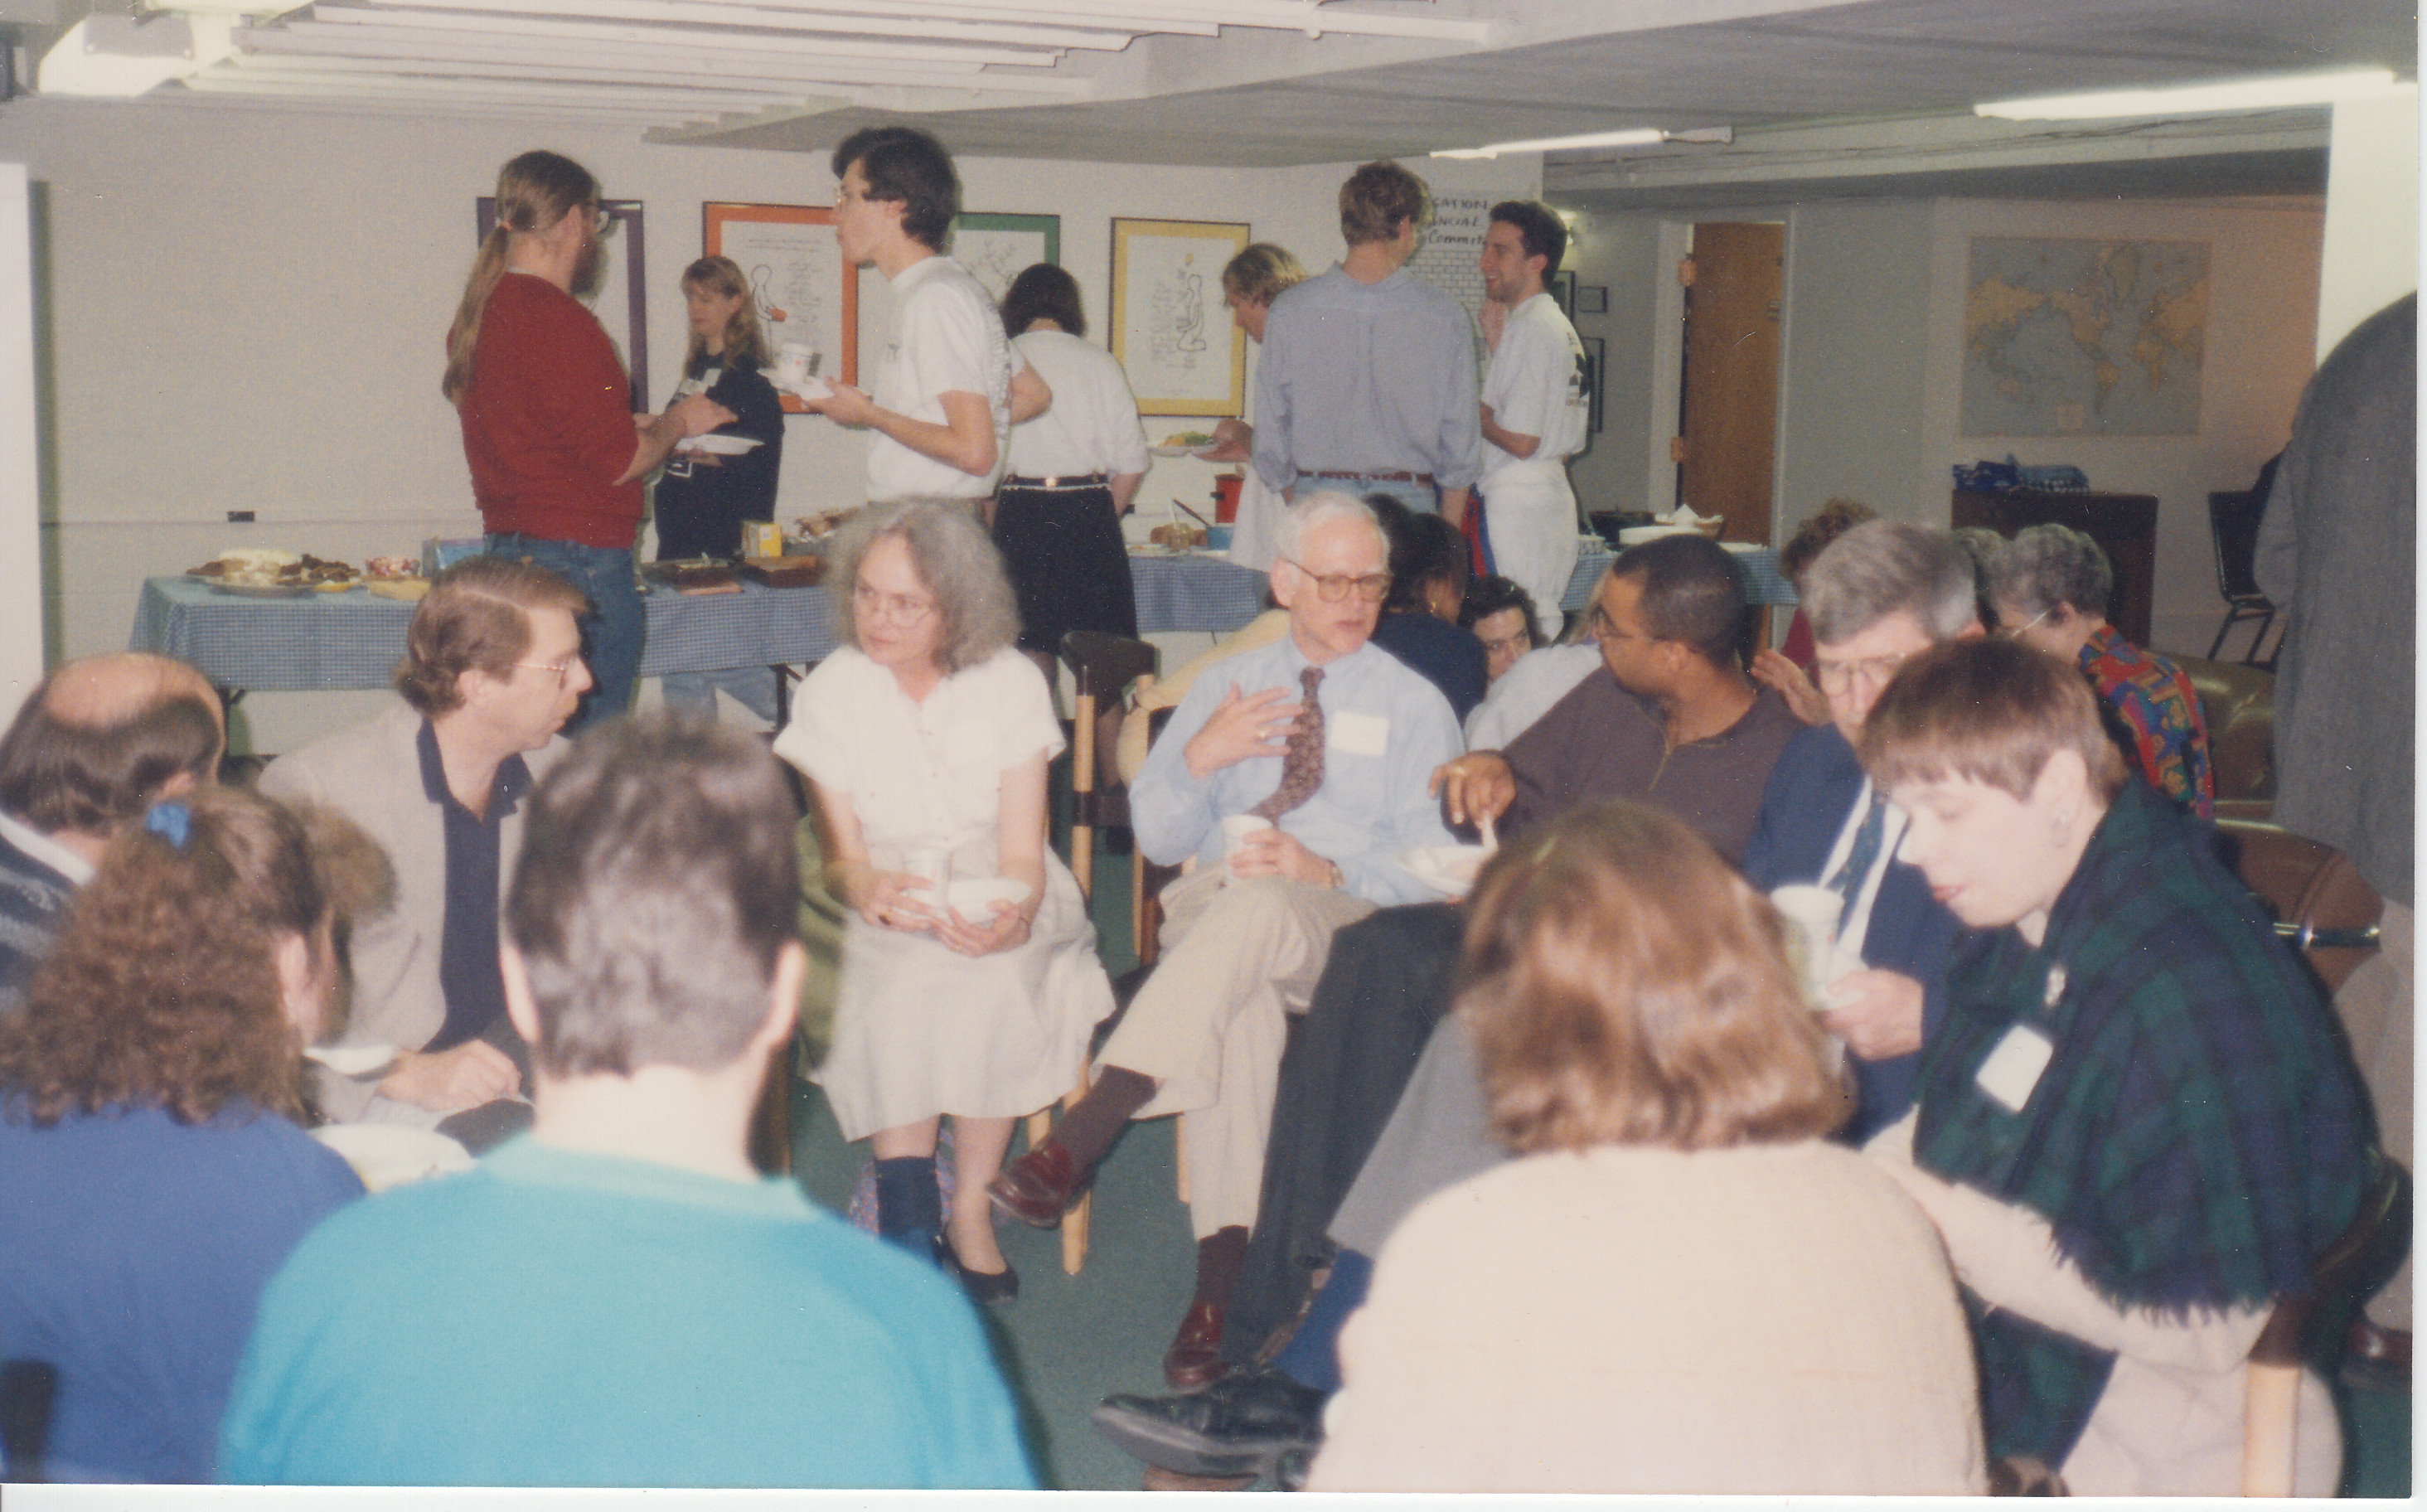 photo of fellowship with food in basement of Chapel